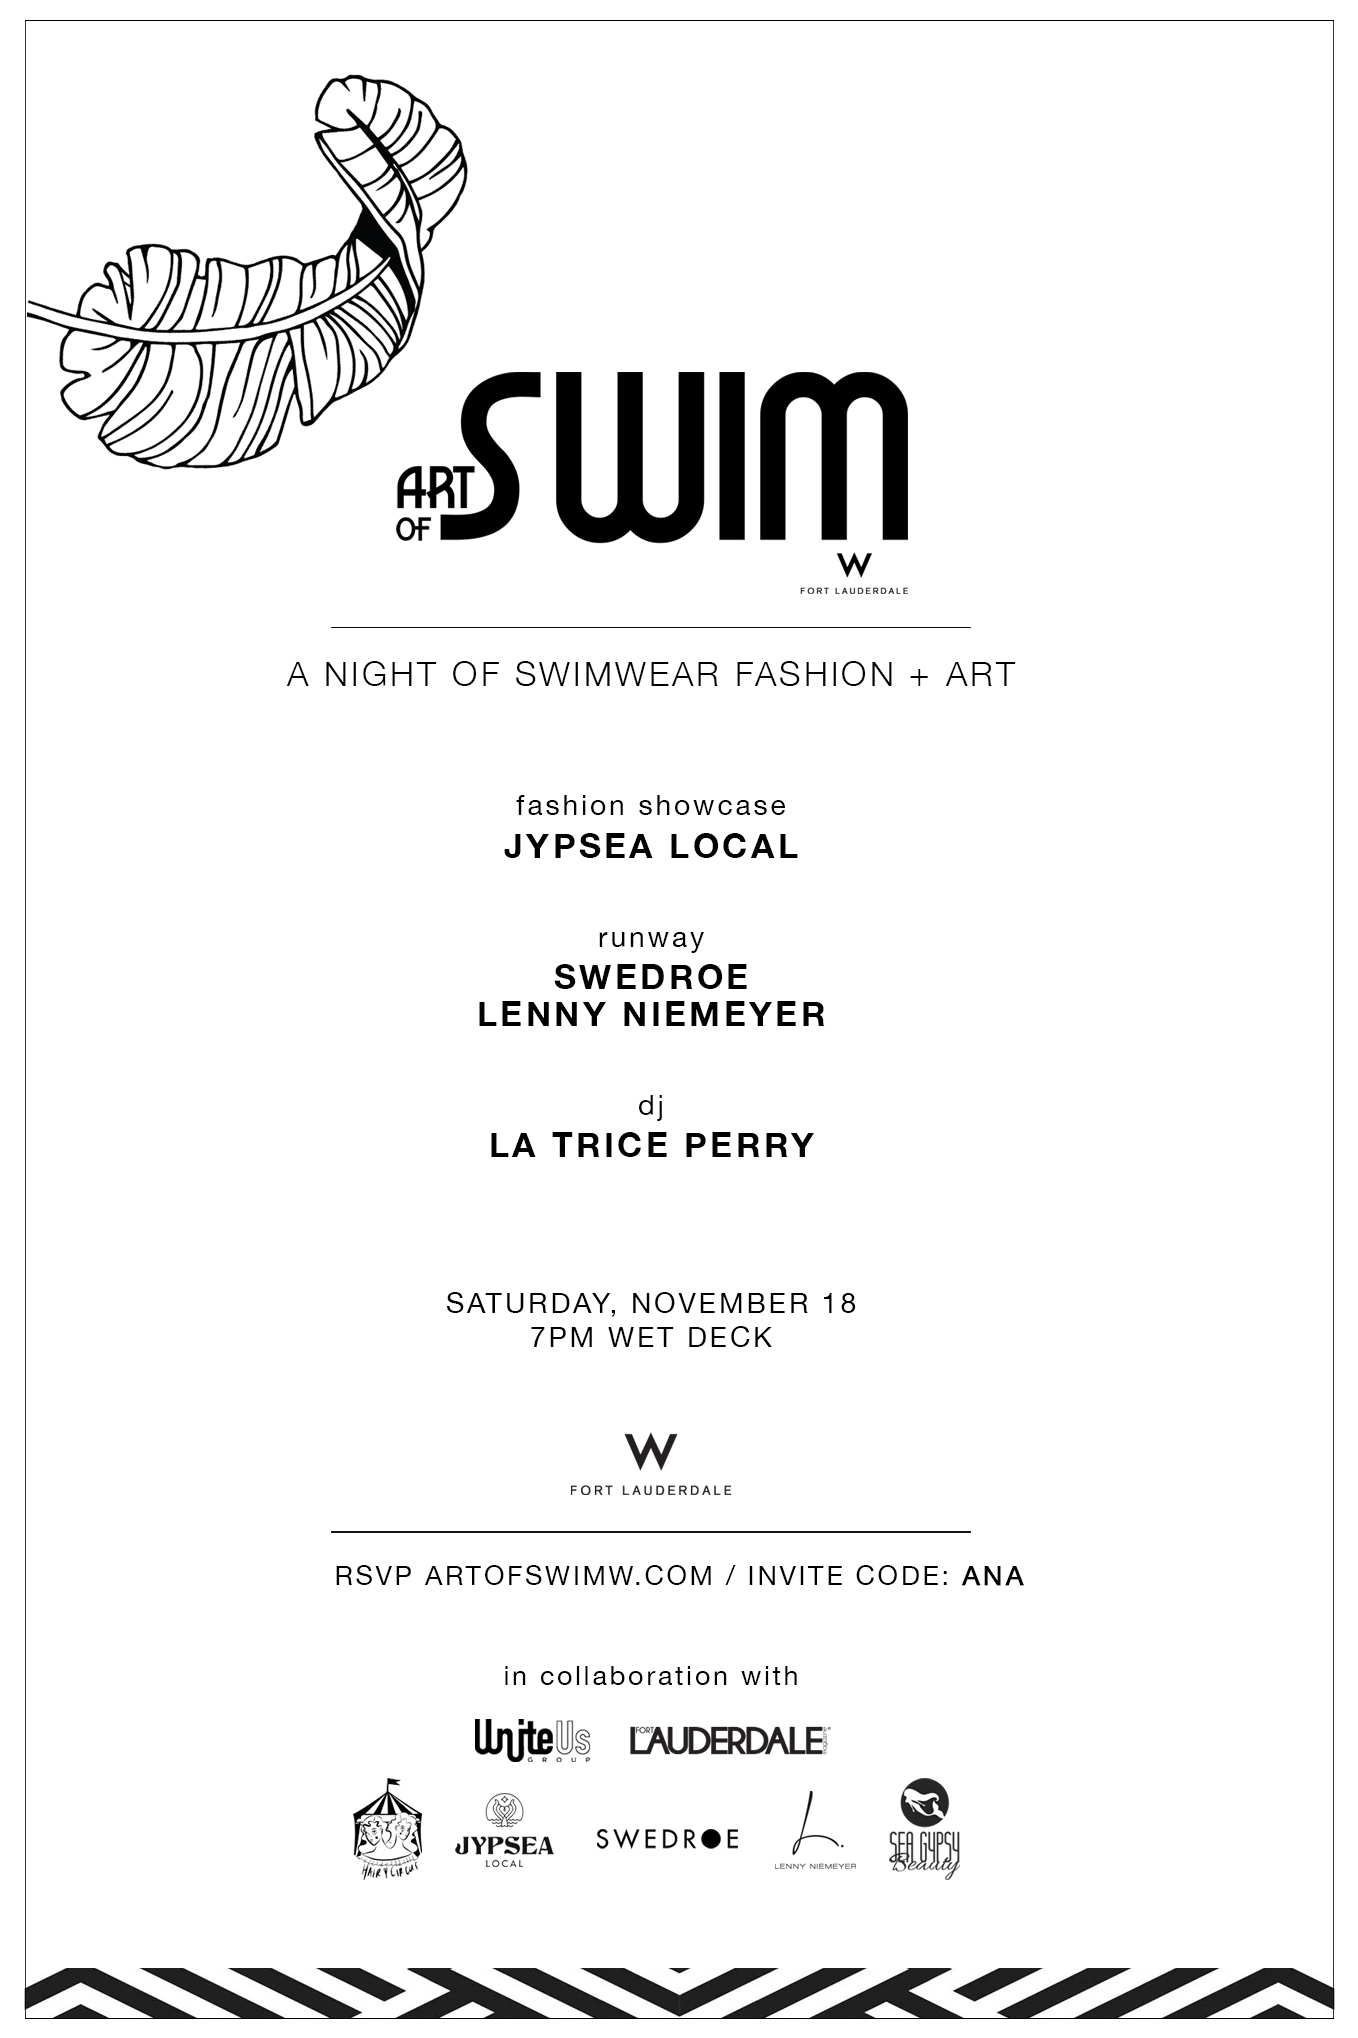 Art Of Swim W Hotel Fort Lauderdale ana florentina